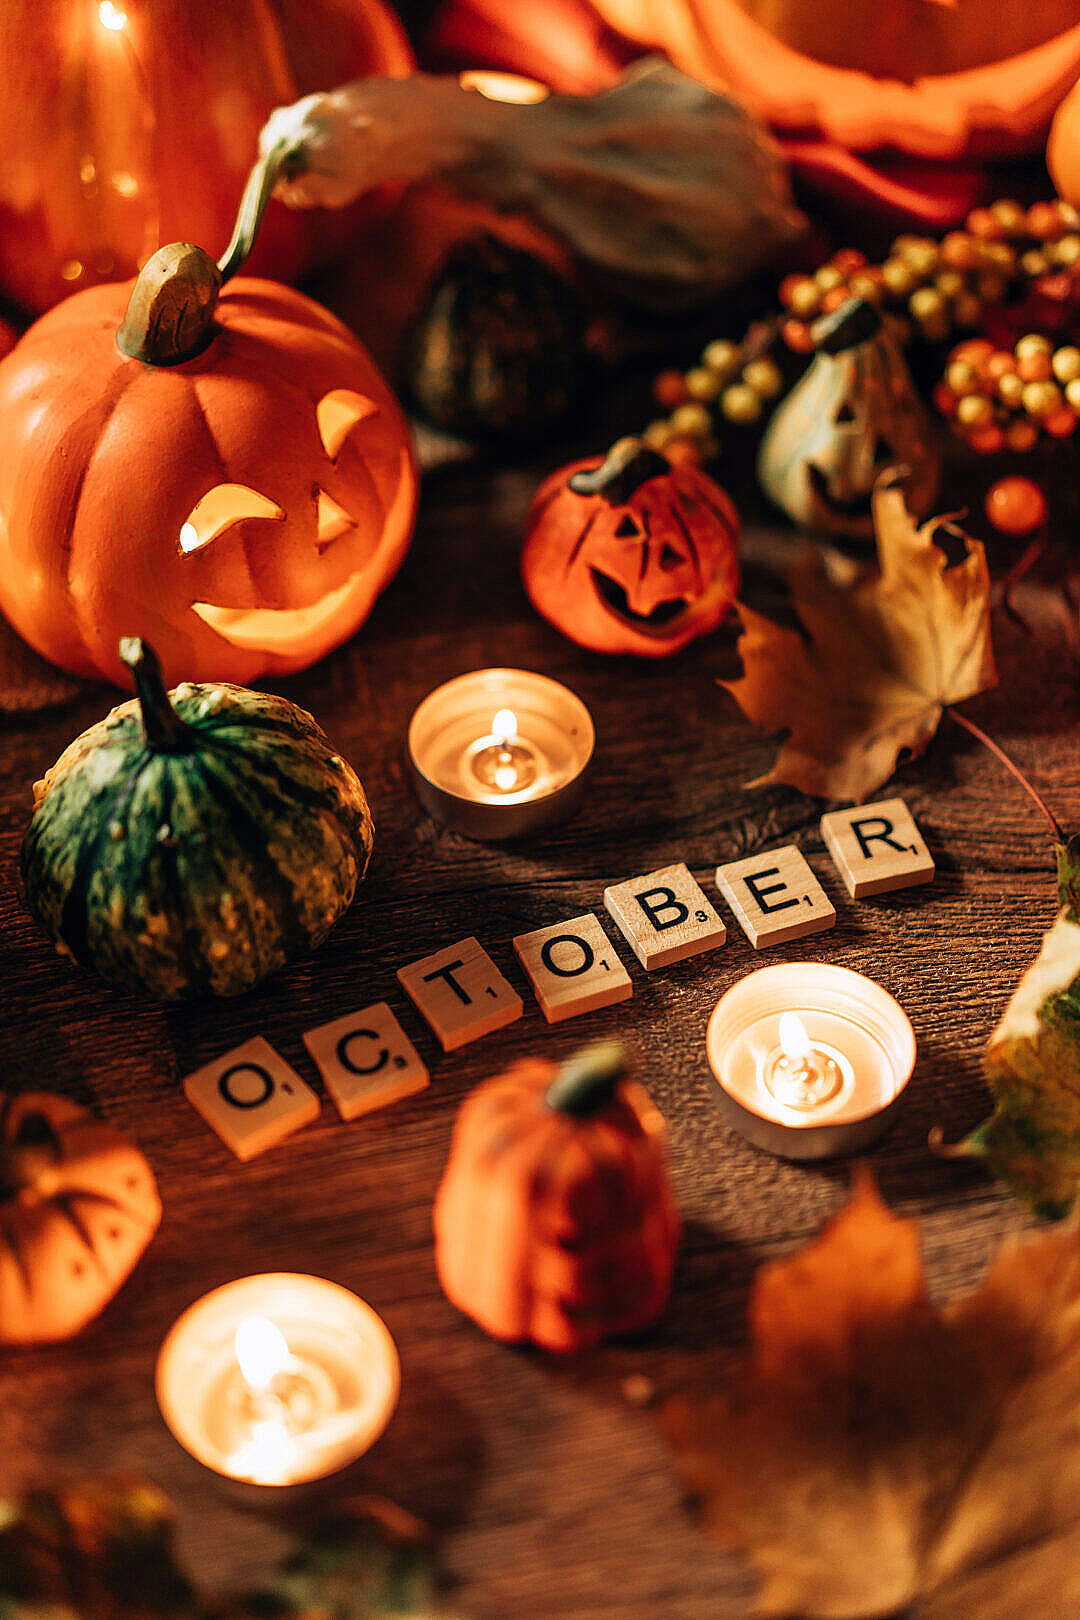 Download Halloween Still Life with October Scrabble Tiles FREE Stock Photo